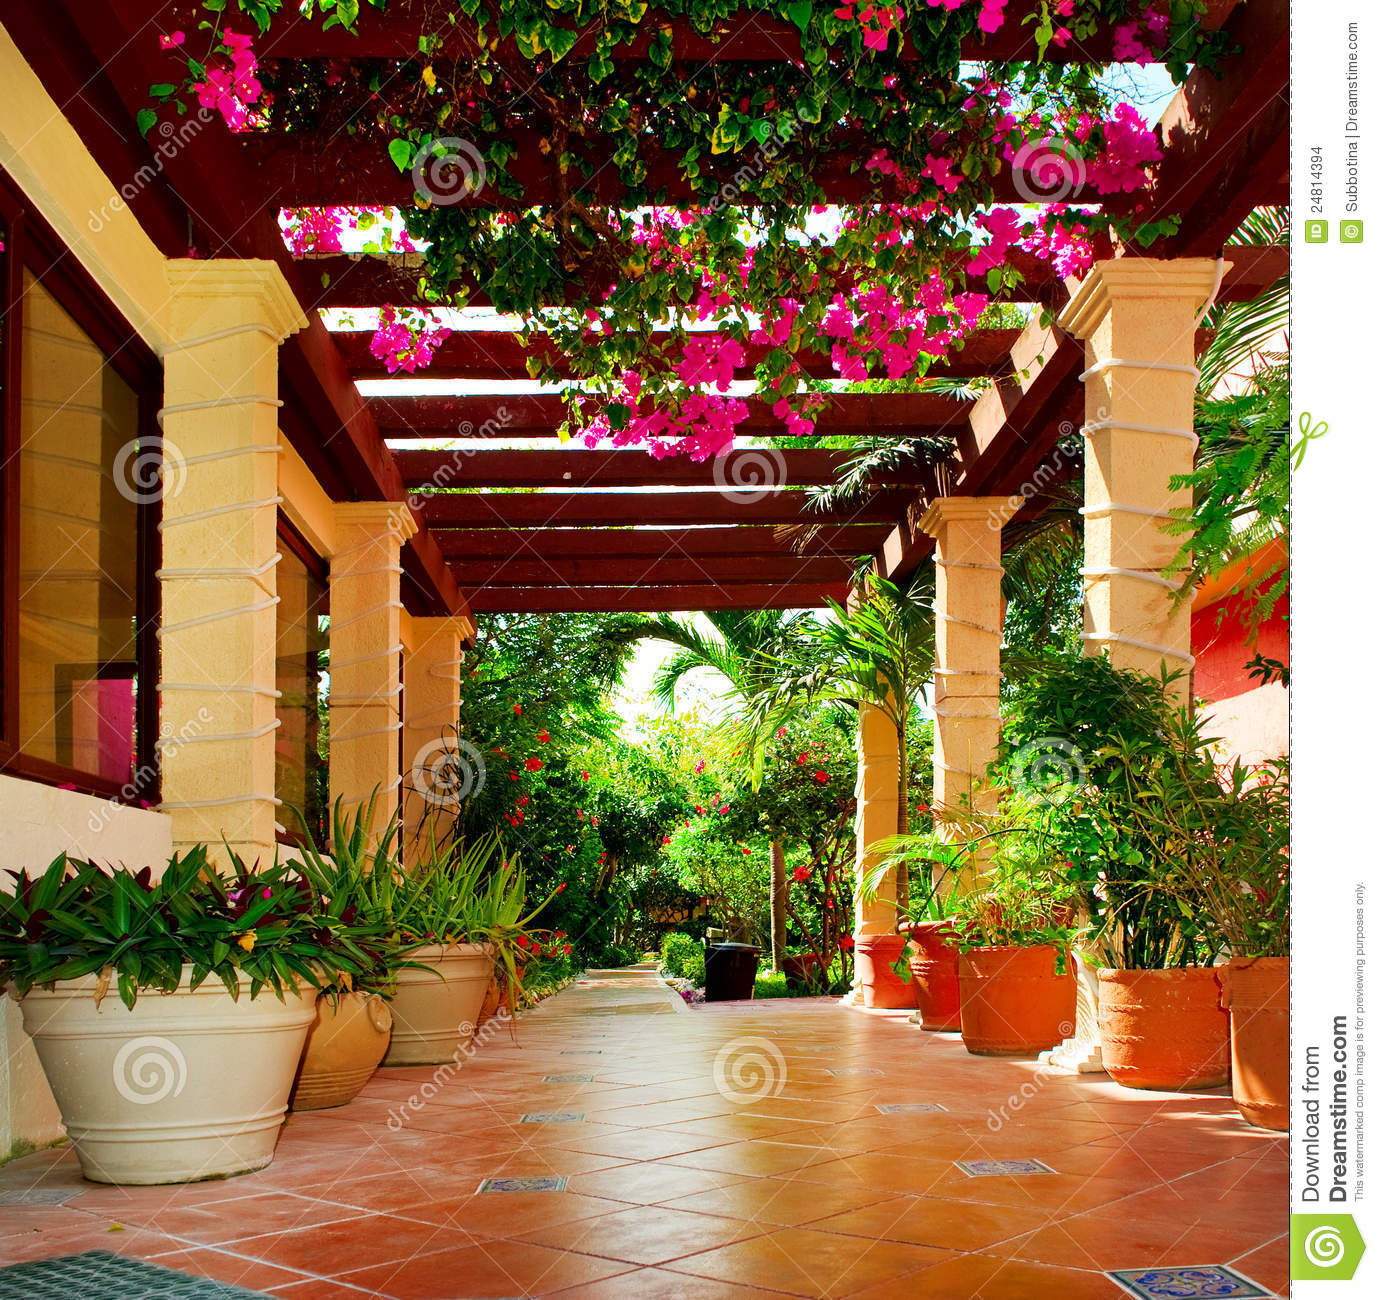 Terrace With Flowers Stock Images  Image 24814394